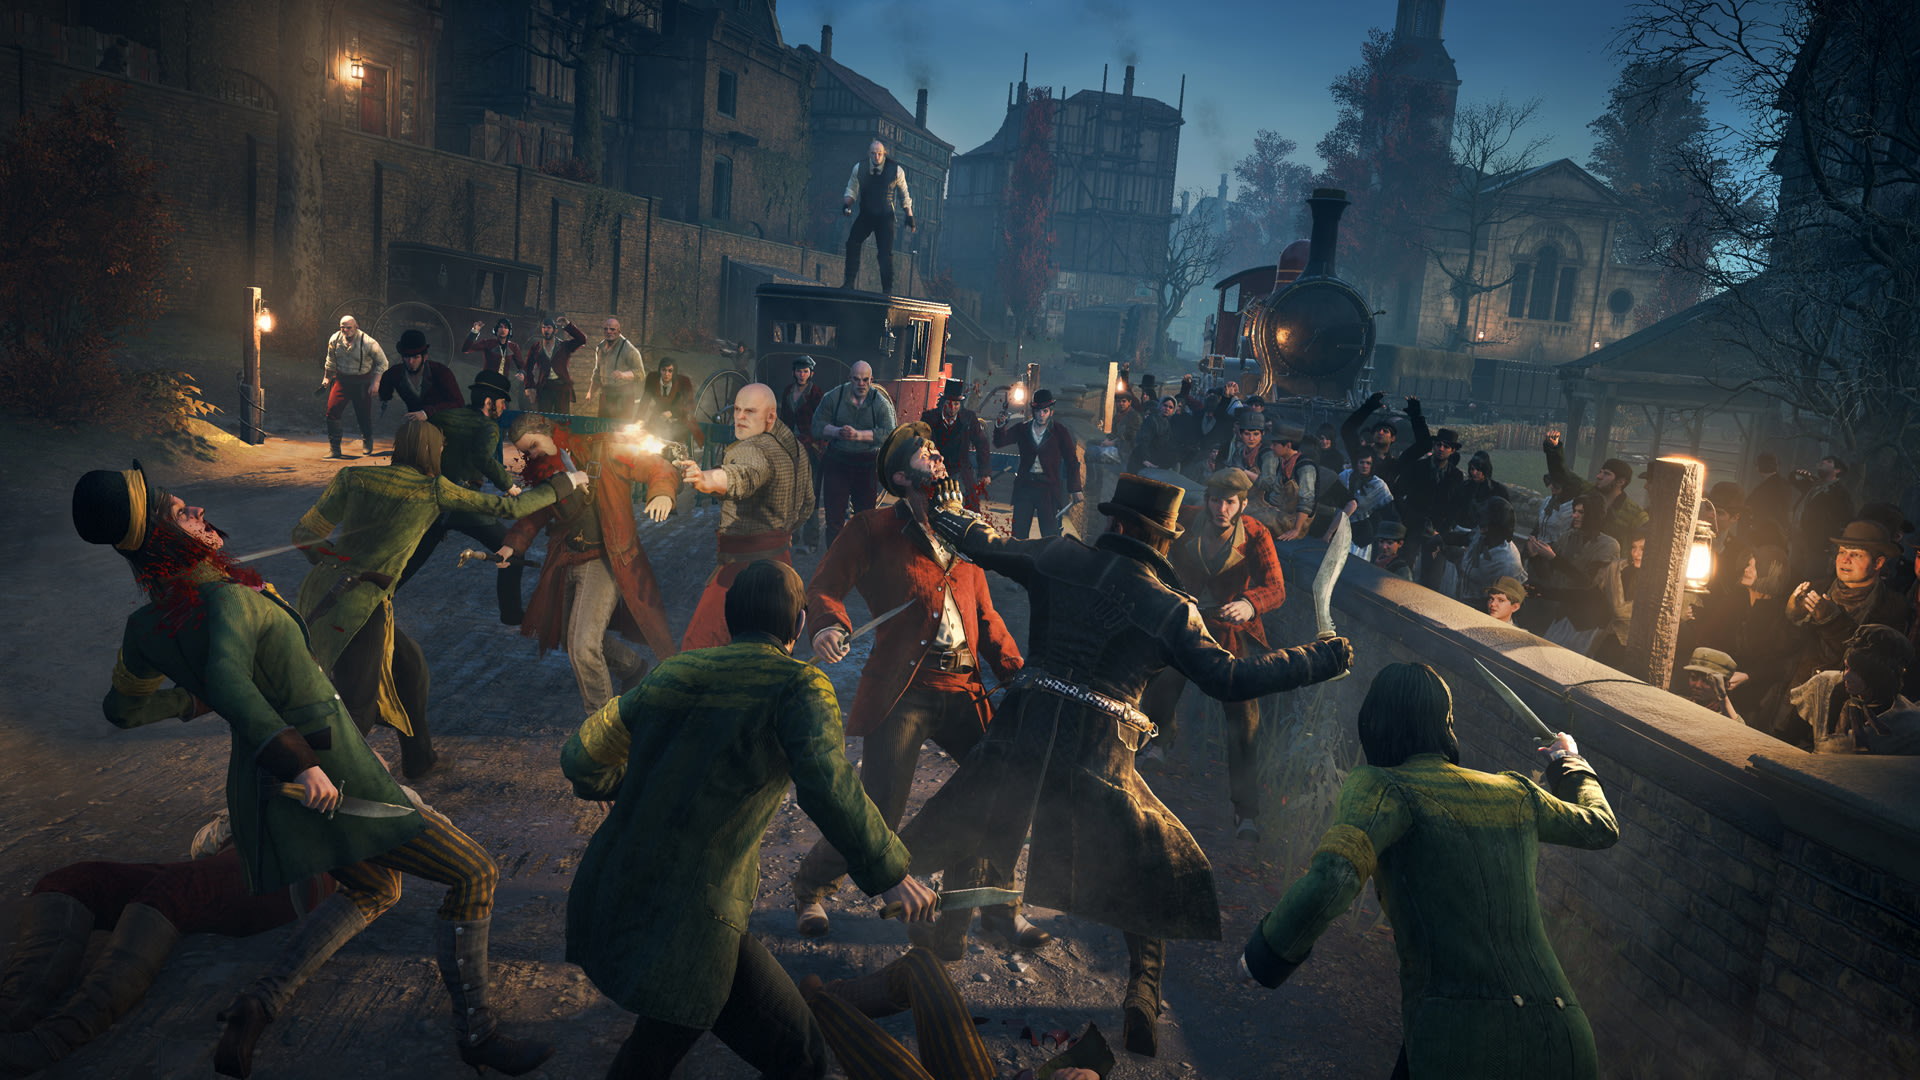 Assassin's Creed Syndicate is winning me over by eliminating the hassle of the open world